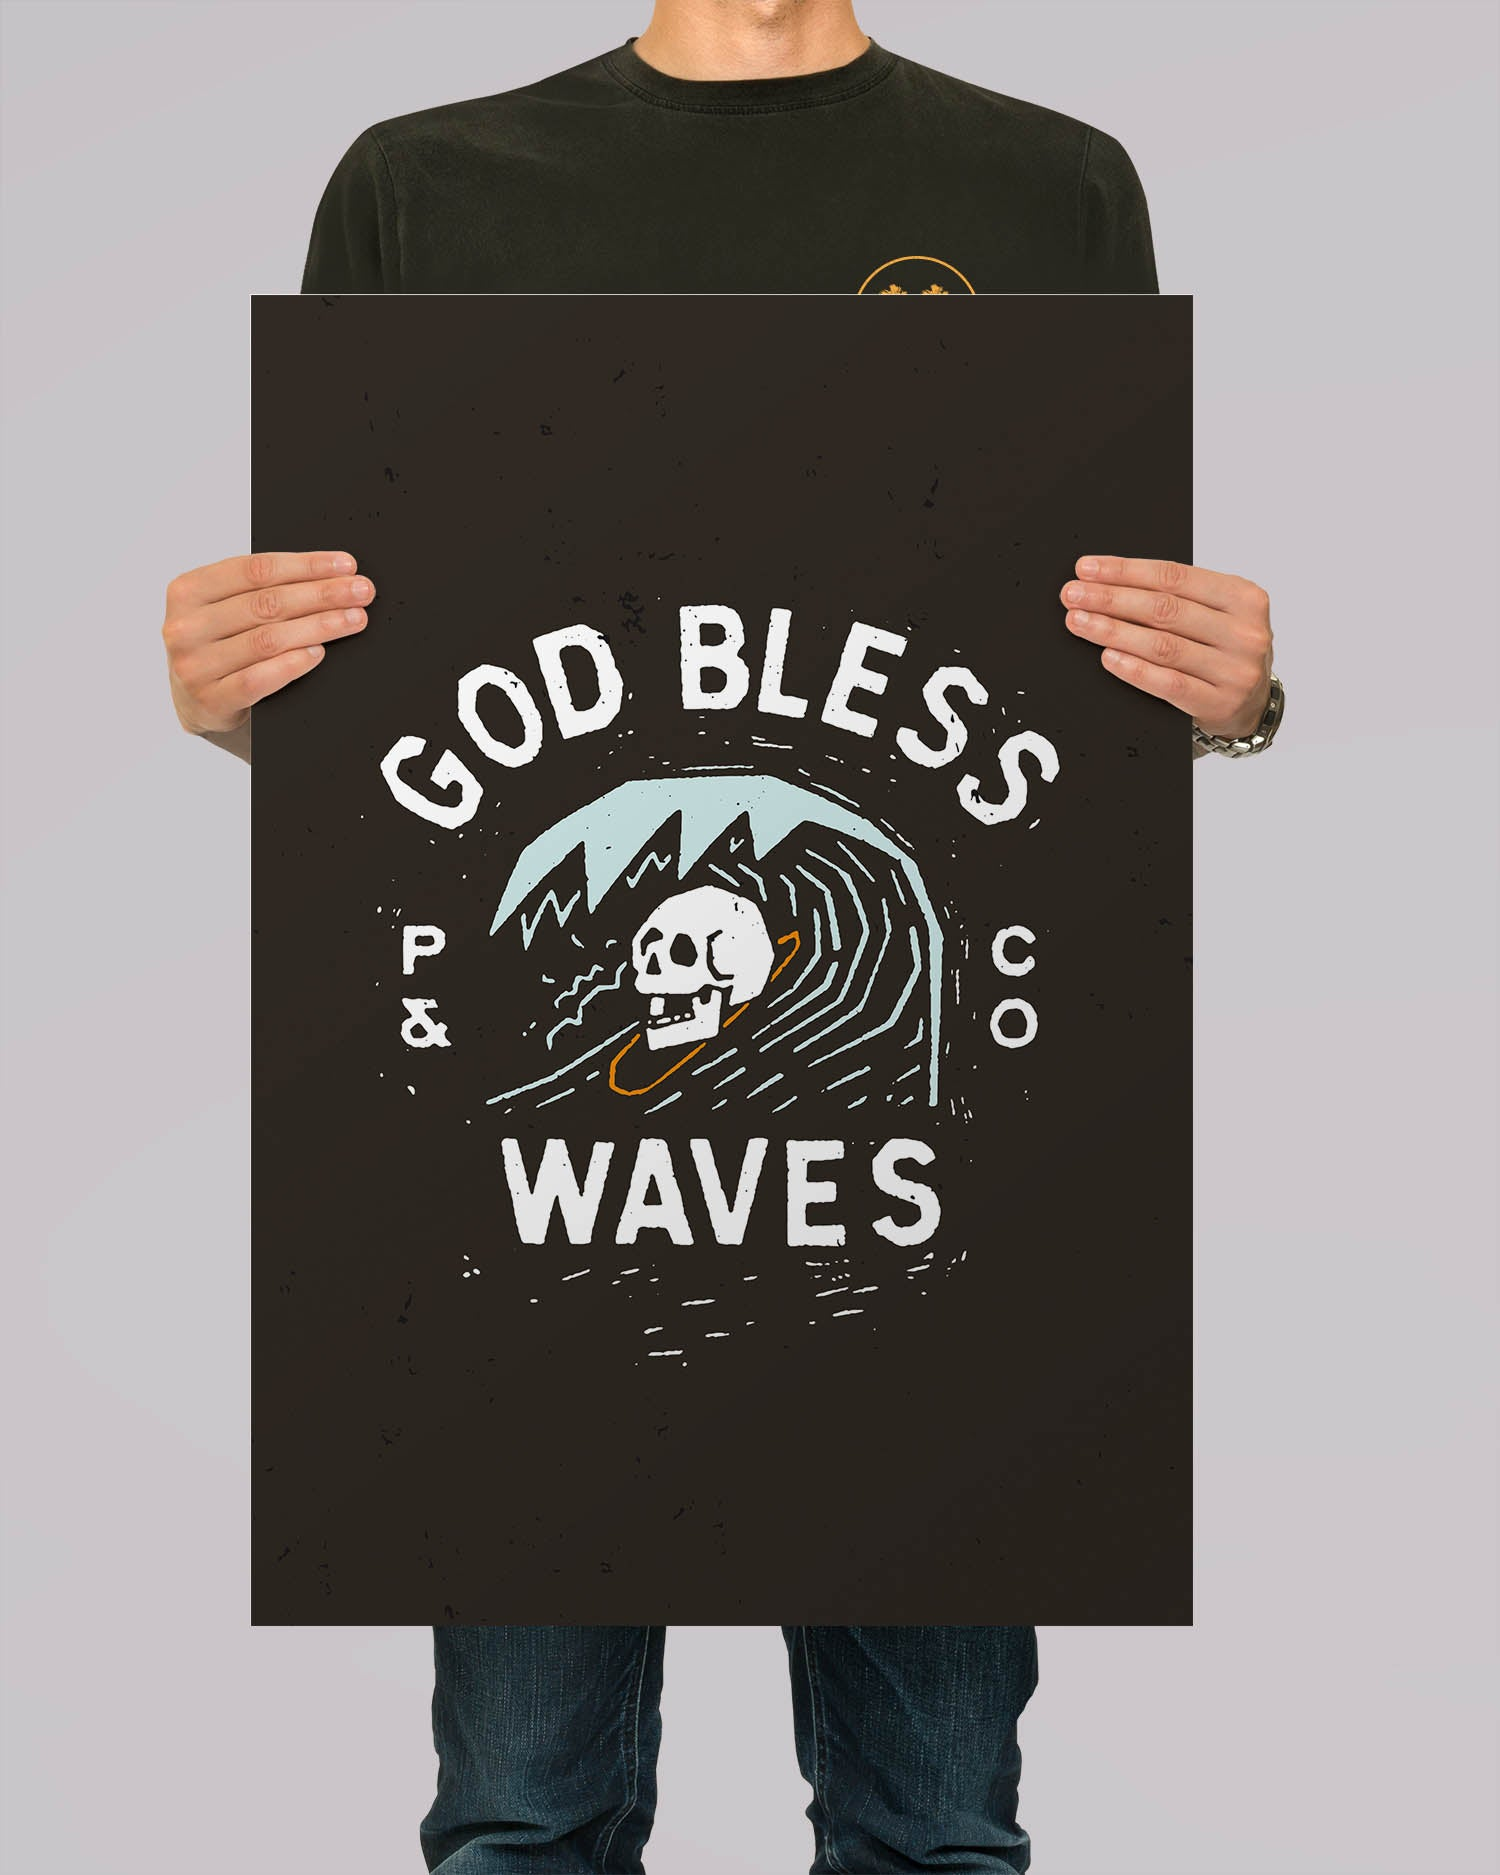 God Bless Waves Black A2 Artwork Print